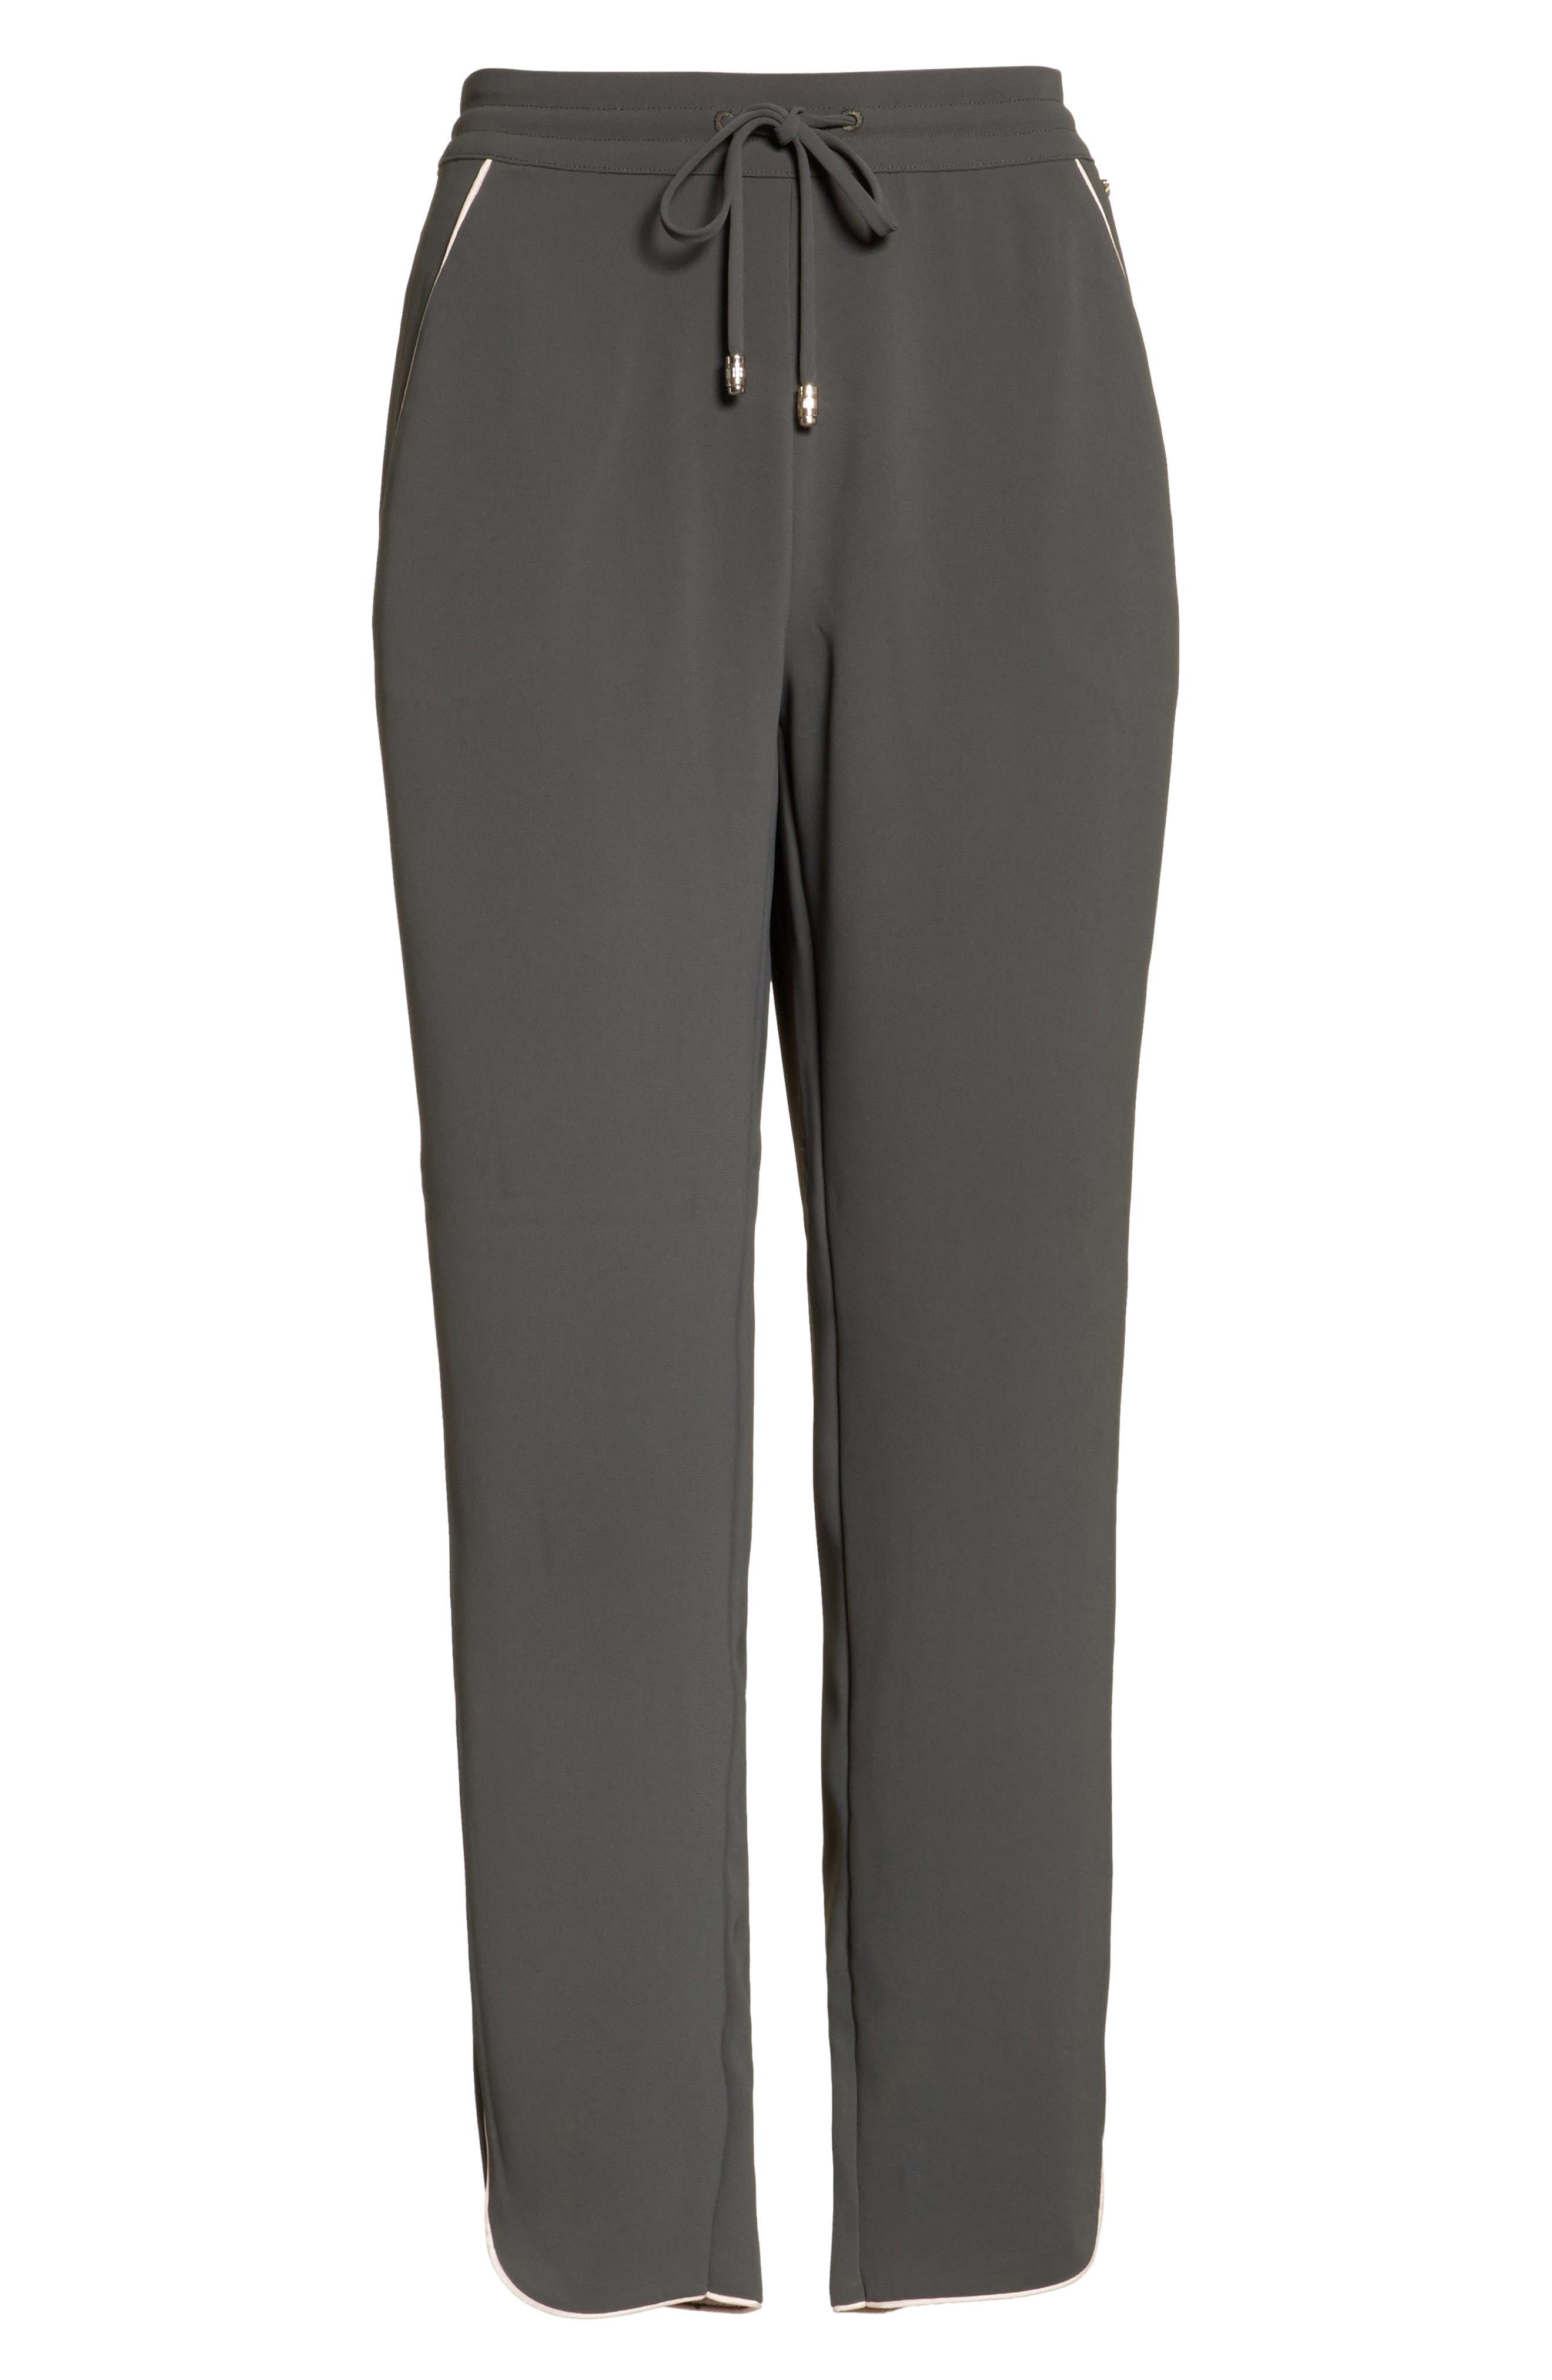 Quenbie Piped Jogger Pants,                             Alternate thumbnail 6, color,                             311